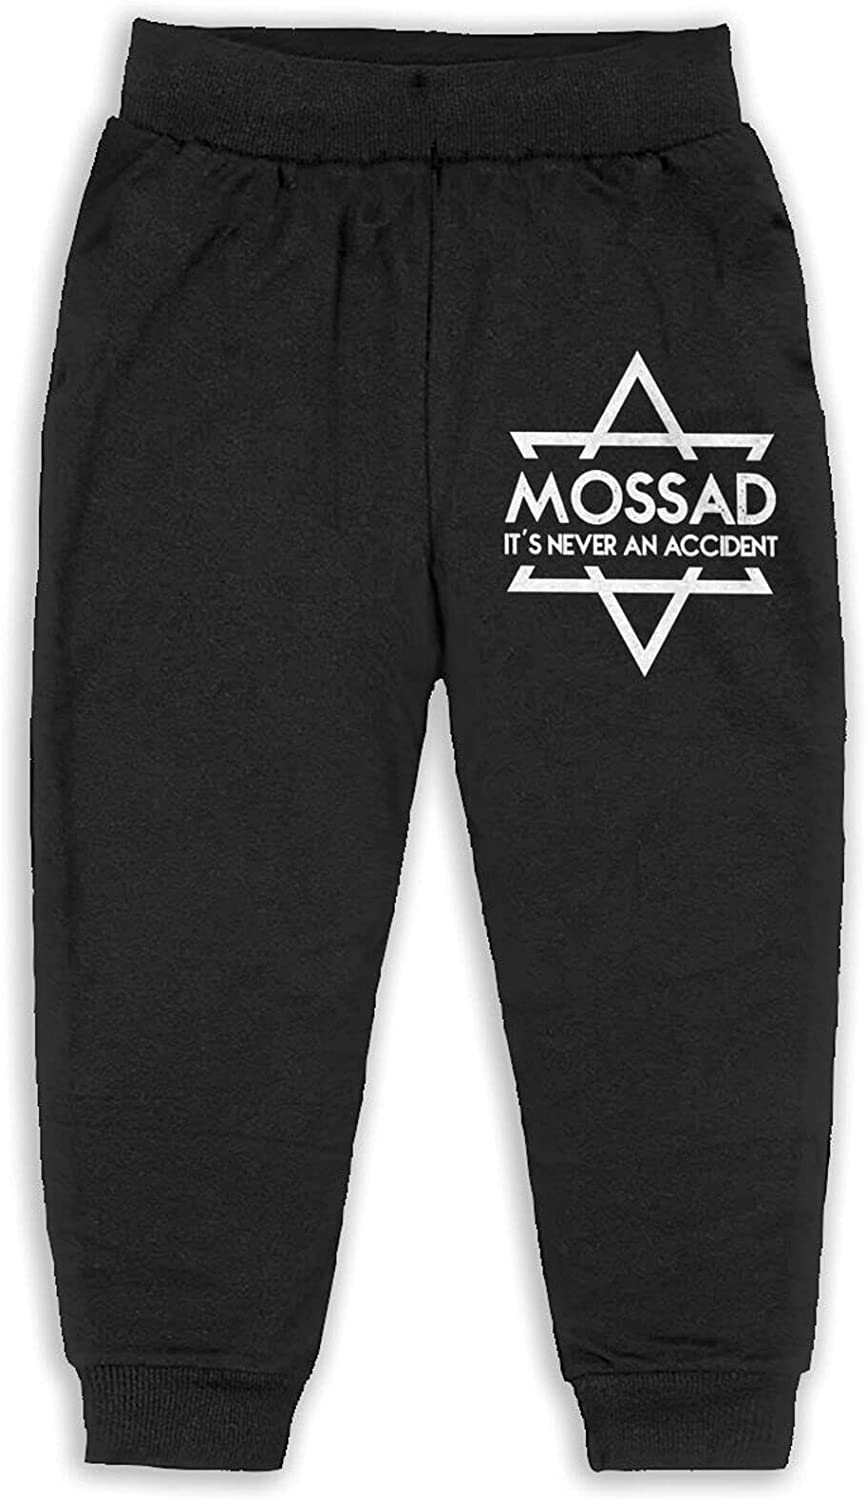 Mossad It's Never an Accident Baby Toddler Boys'Cotton Jogger Casual Slacks 2t-6 (5-6 Years)